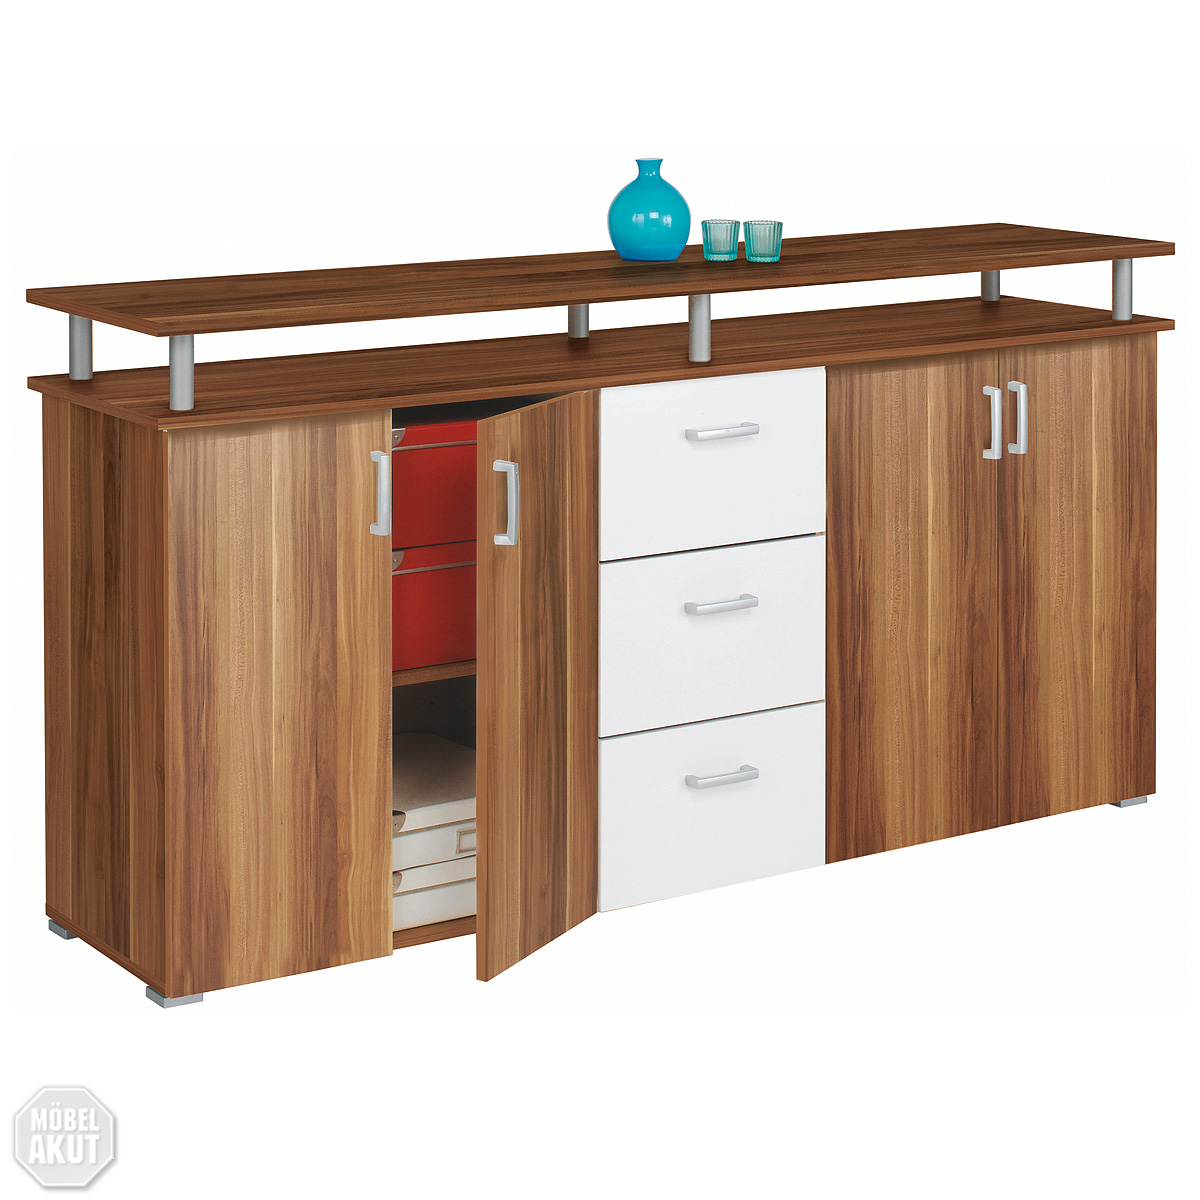 sideboard lios kommode anrichte in nussbaum wei neu ebay. Black Bedroom Furniture Sets. Home Design Ideas